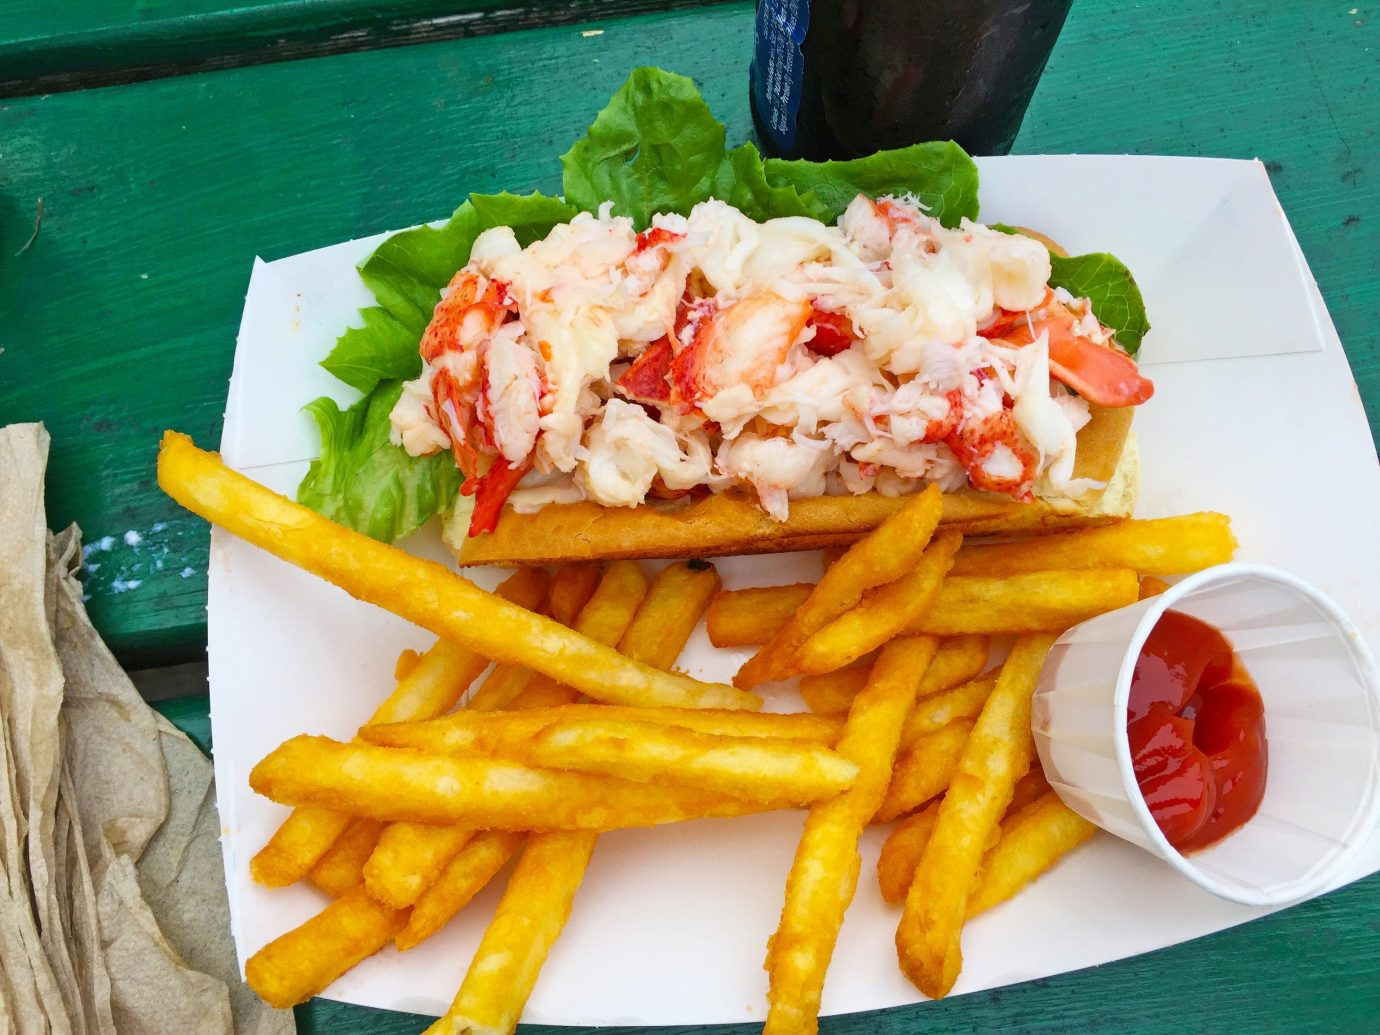 Food + Drink food table fries dish indoor french fries cuisine fish meal Seafood produce fast food side dish sliced